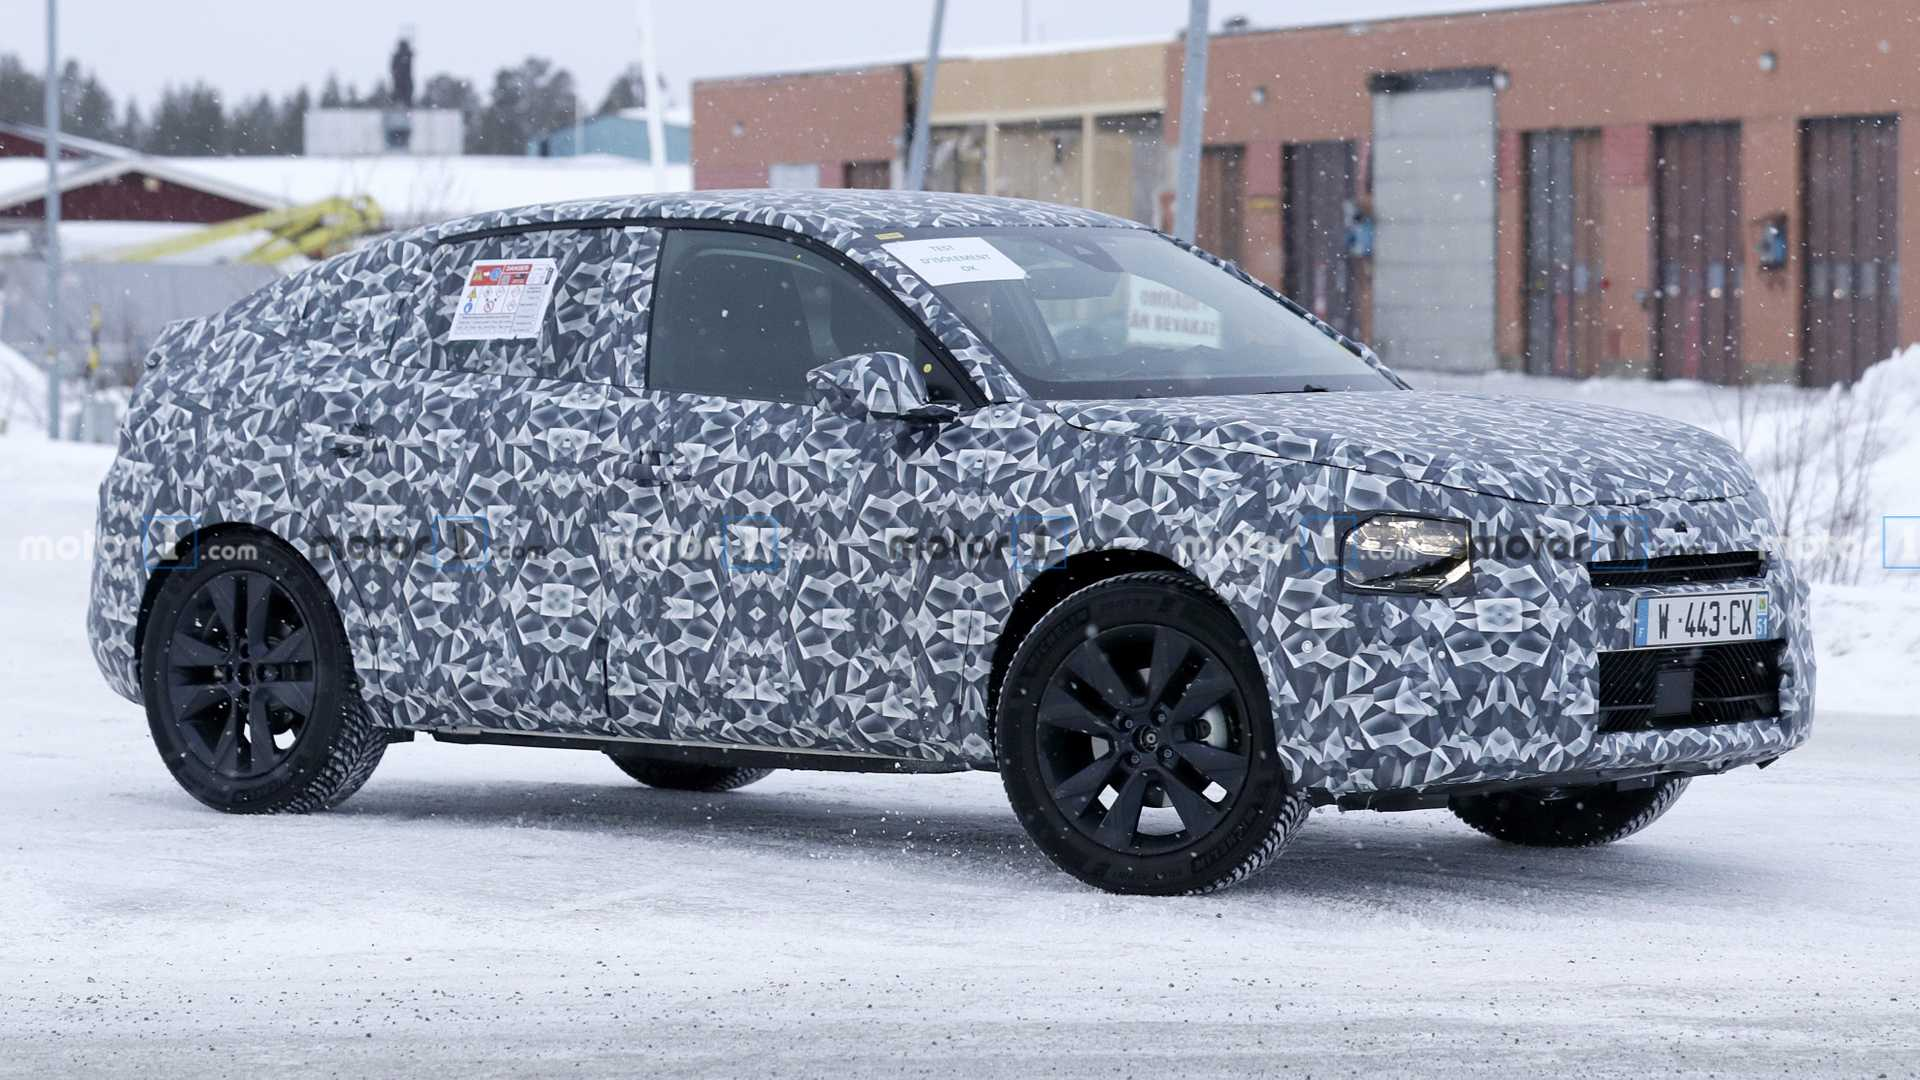 Citroen C4 Cactus replacement spied for first time